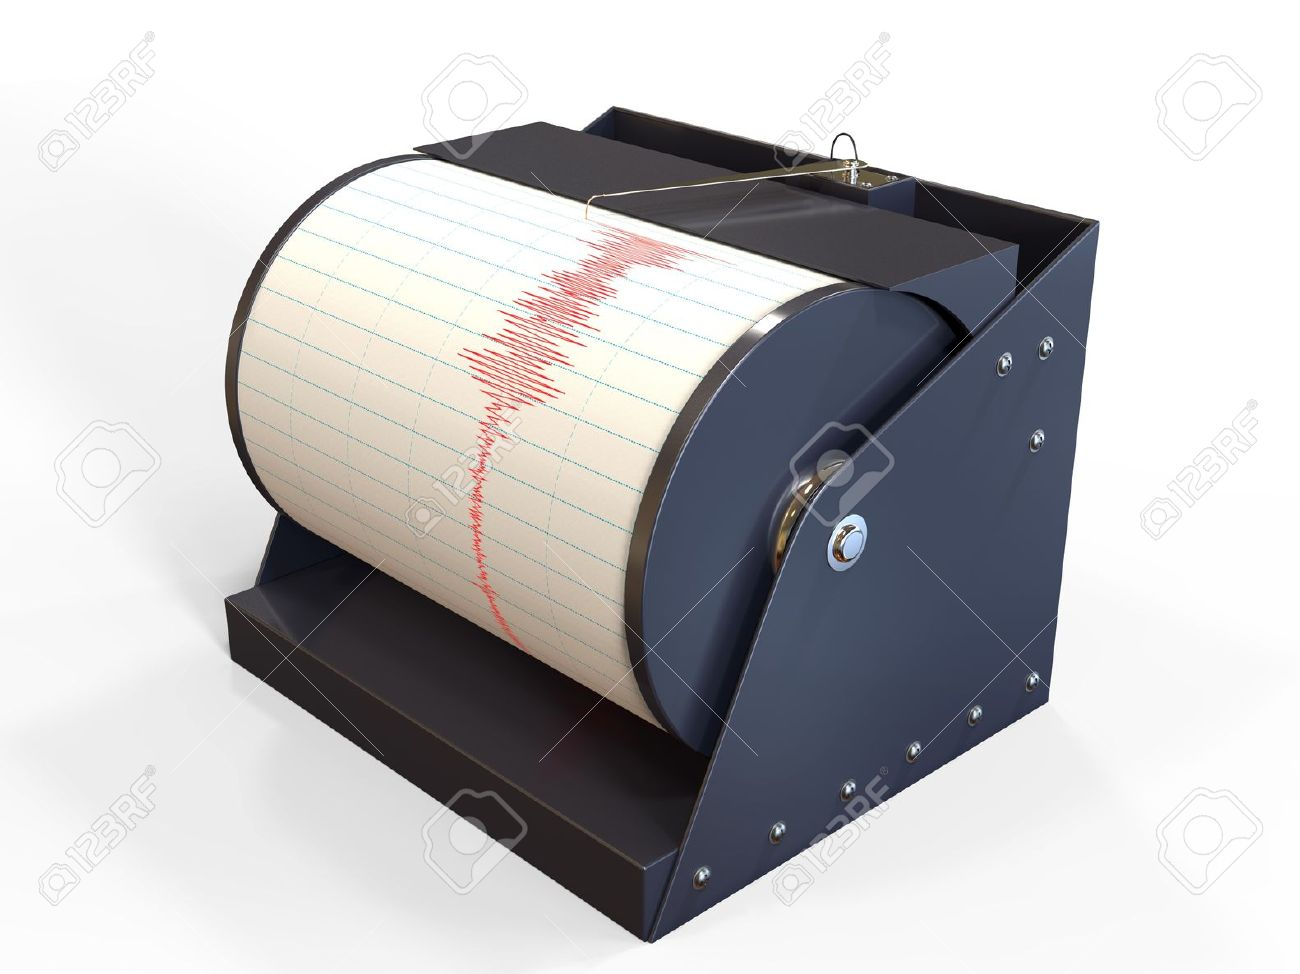 85 Seismograph Stock Vector Illustration And Royalty Free.